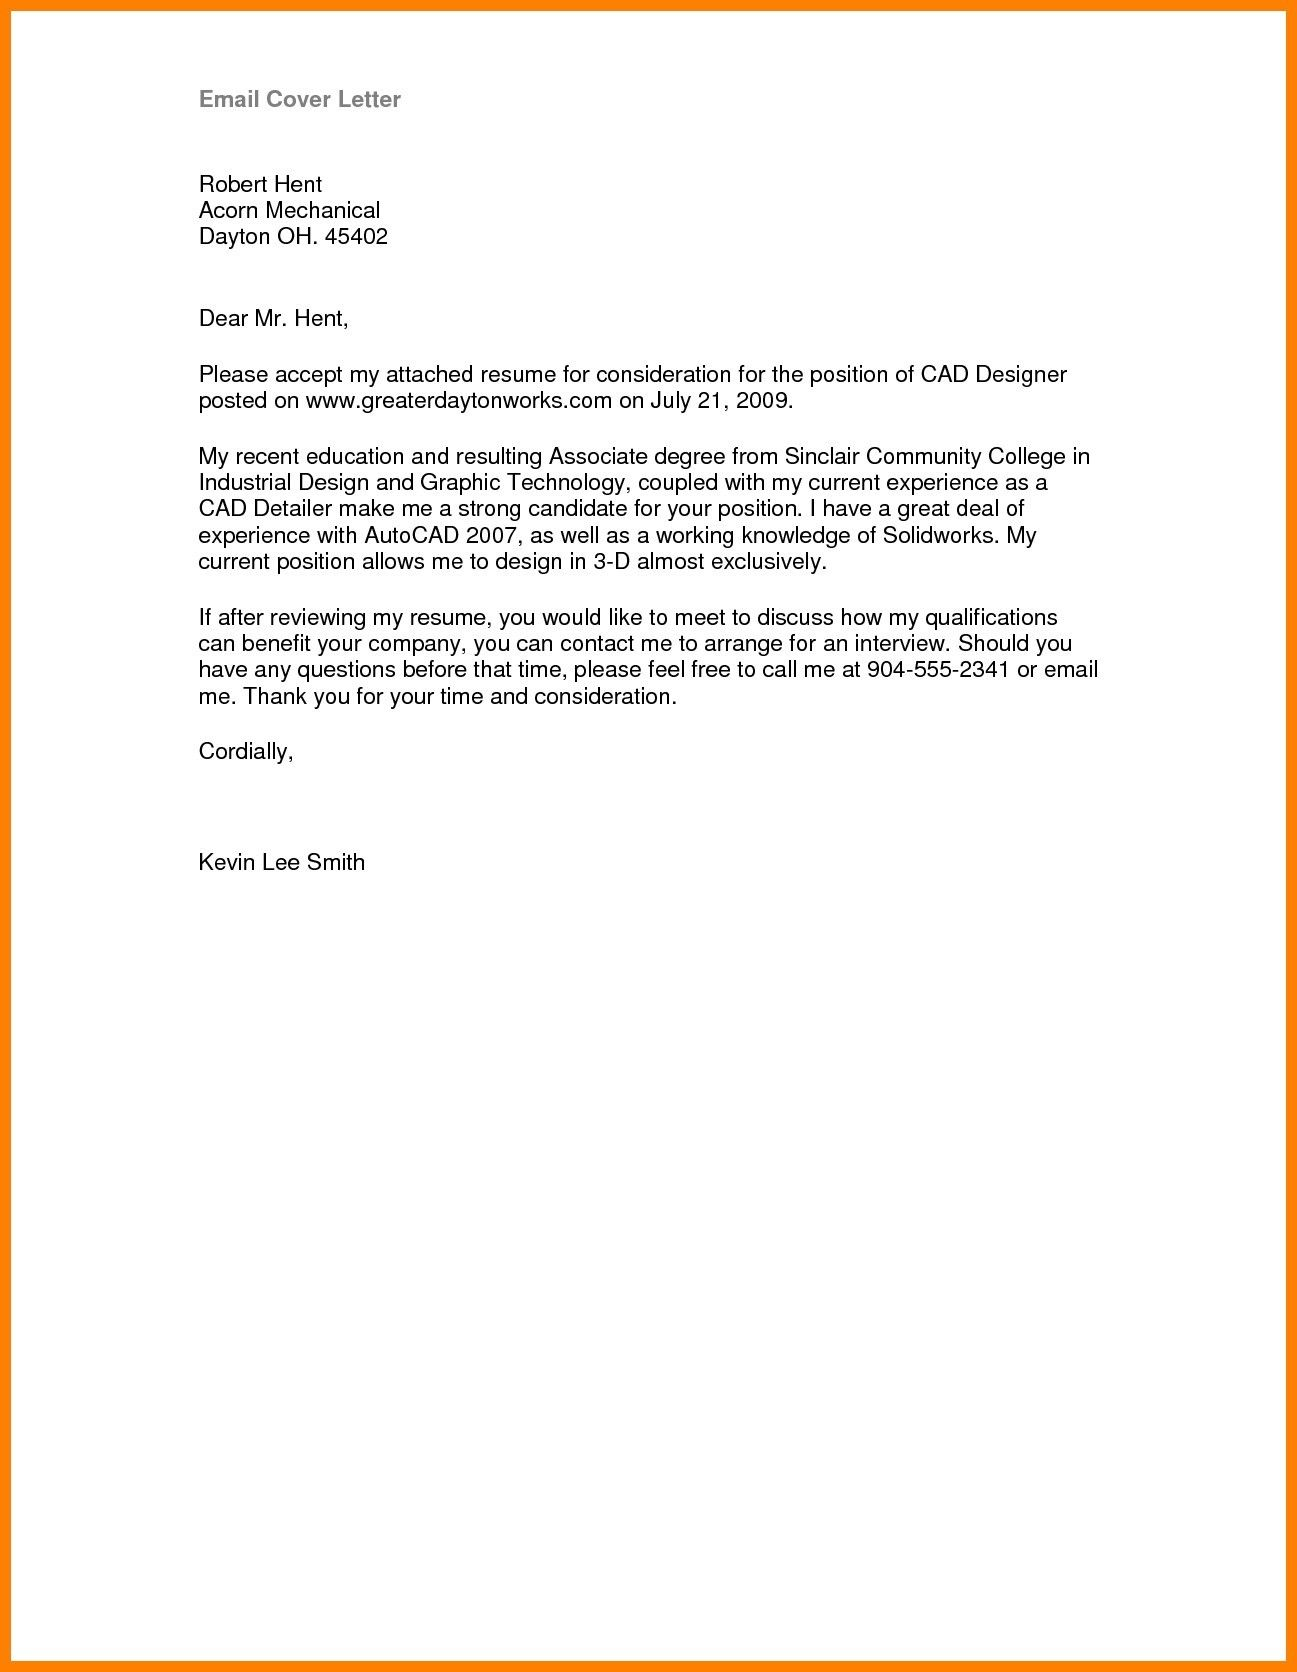 25 Email Cover Letter Sample Format Example Save Attachment New Resume Content